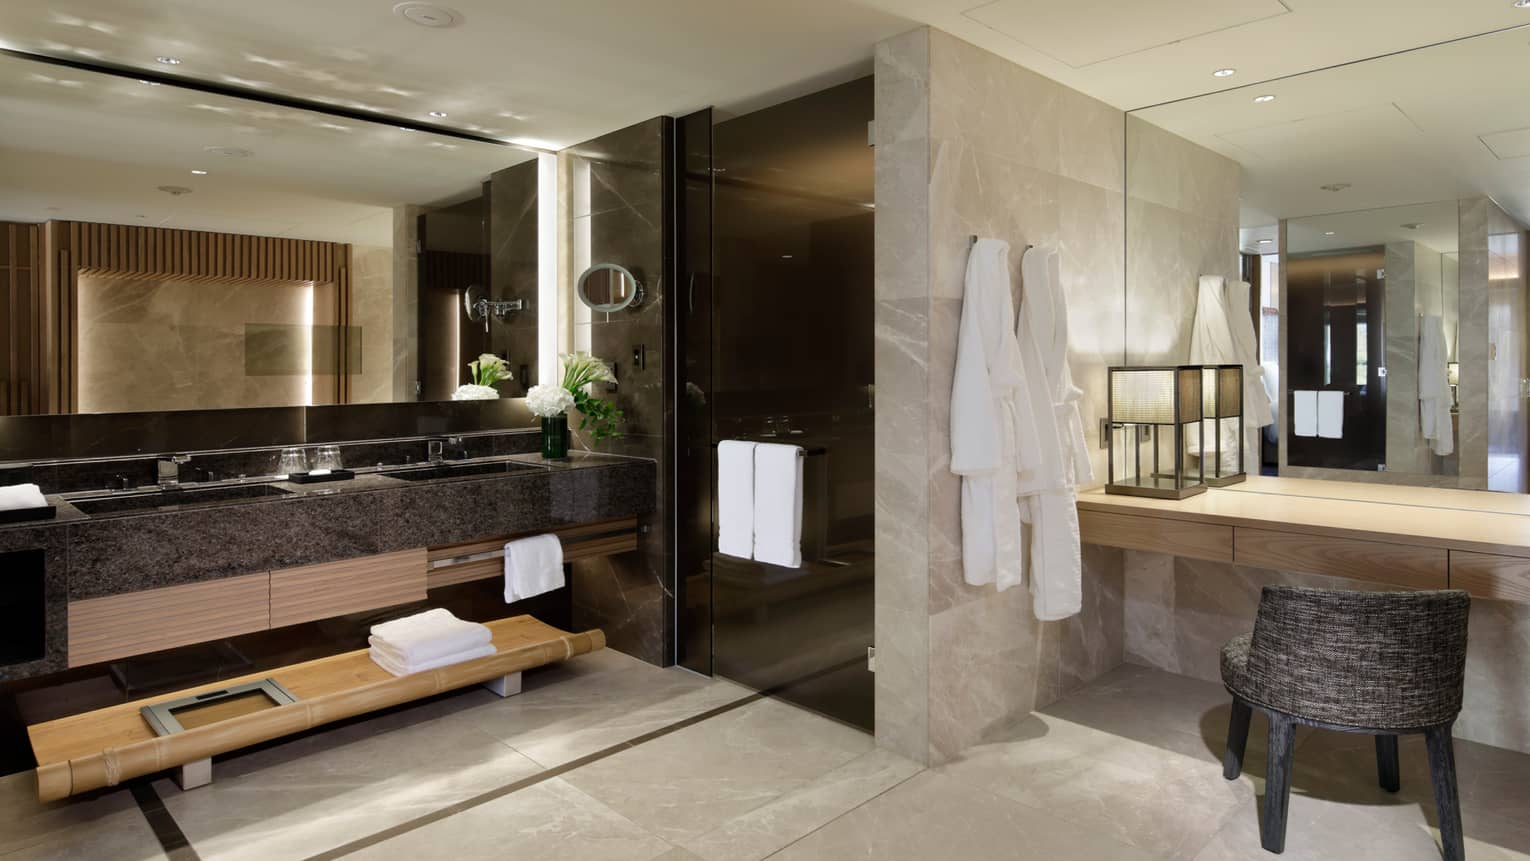 Large marble bathroom with double sink by black glass walk-in shower, vanity and chair